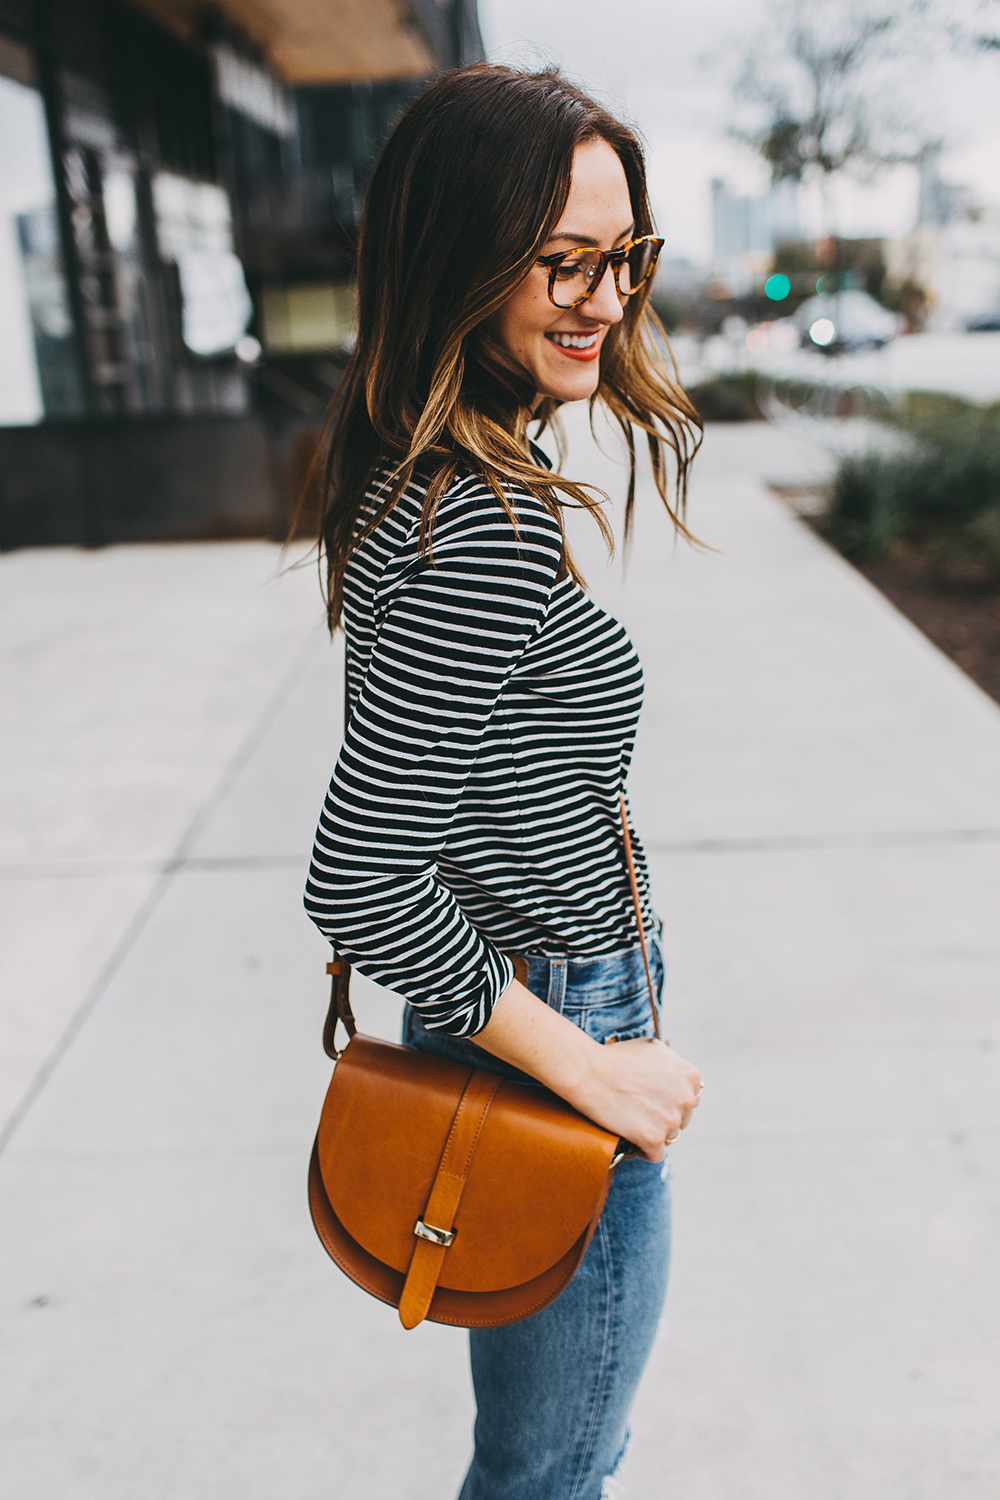 livvyland-blog-olivia-watson-austin-texas-fashion-blogger-j-crew-striped-turtleneck-outfit-idea-inspiration-4